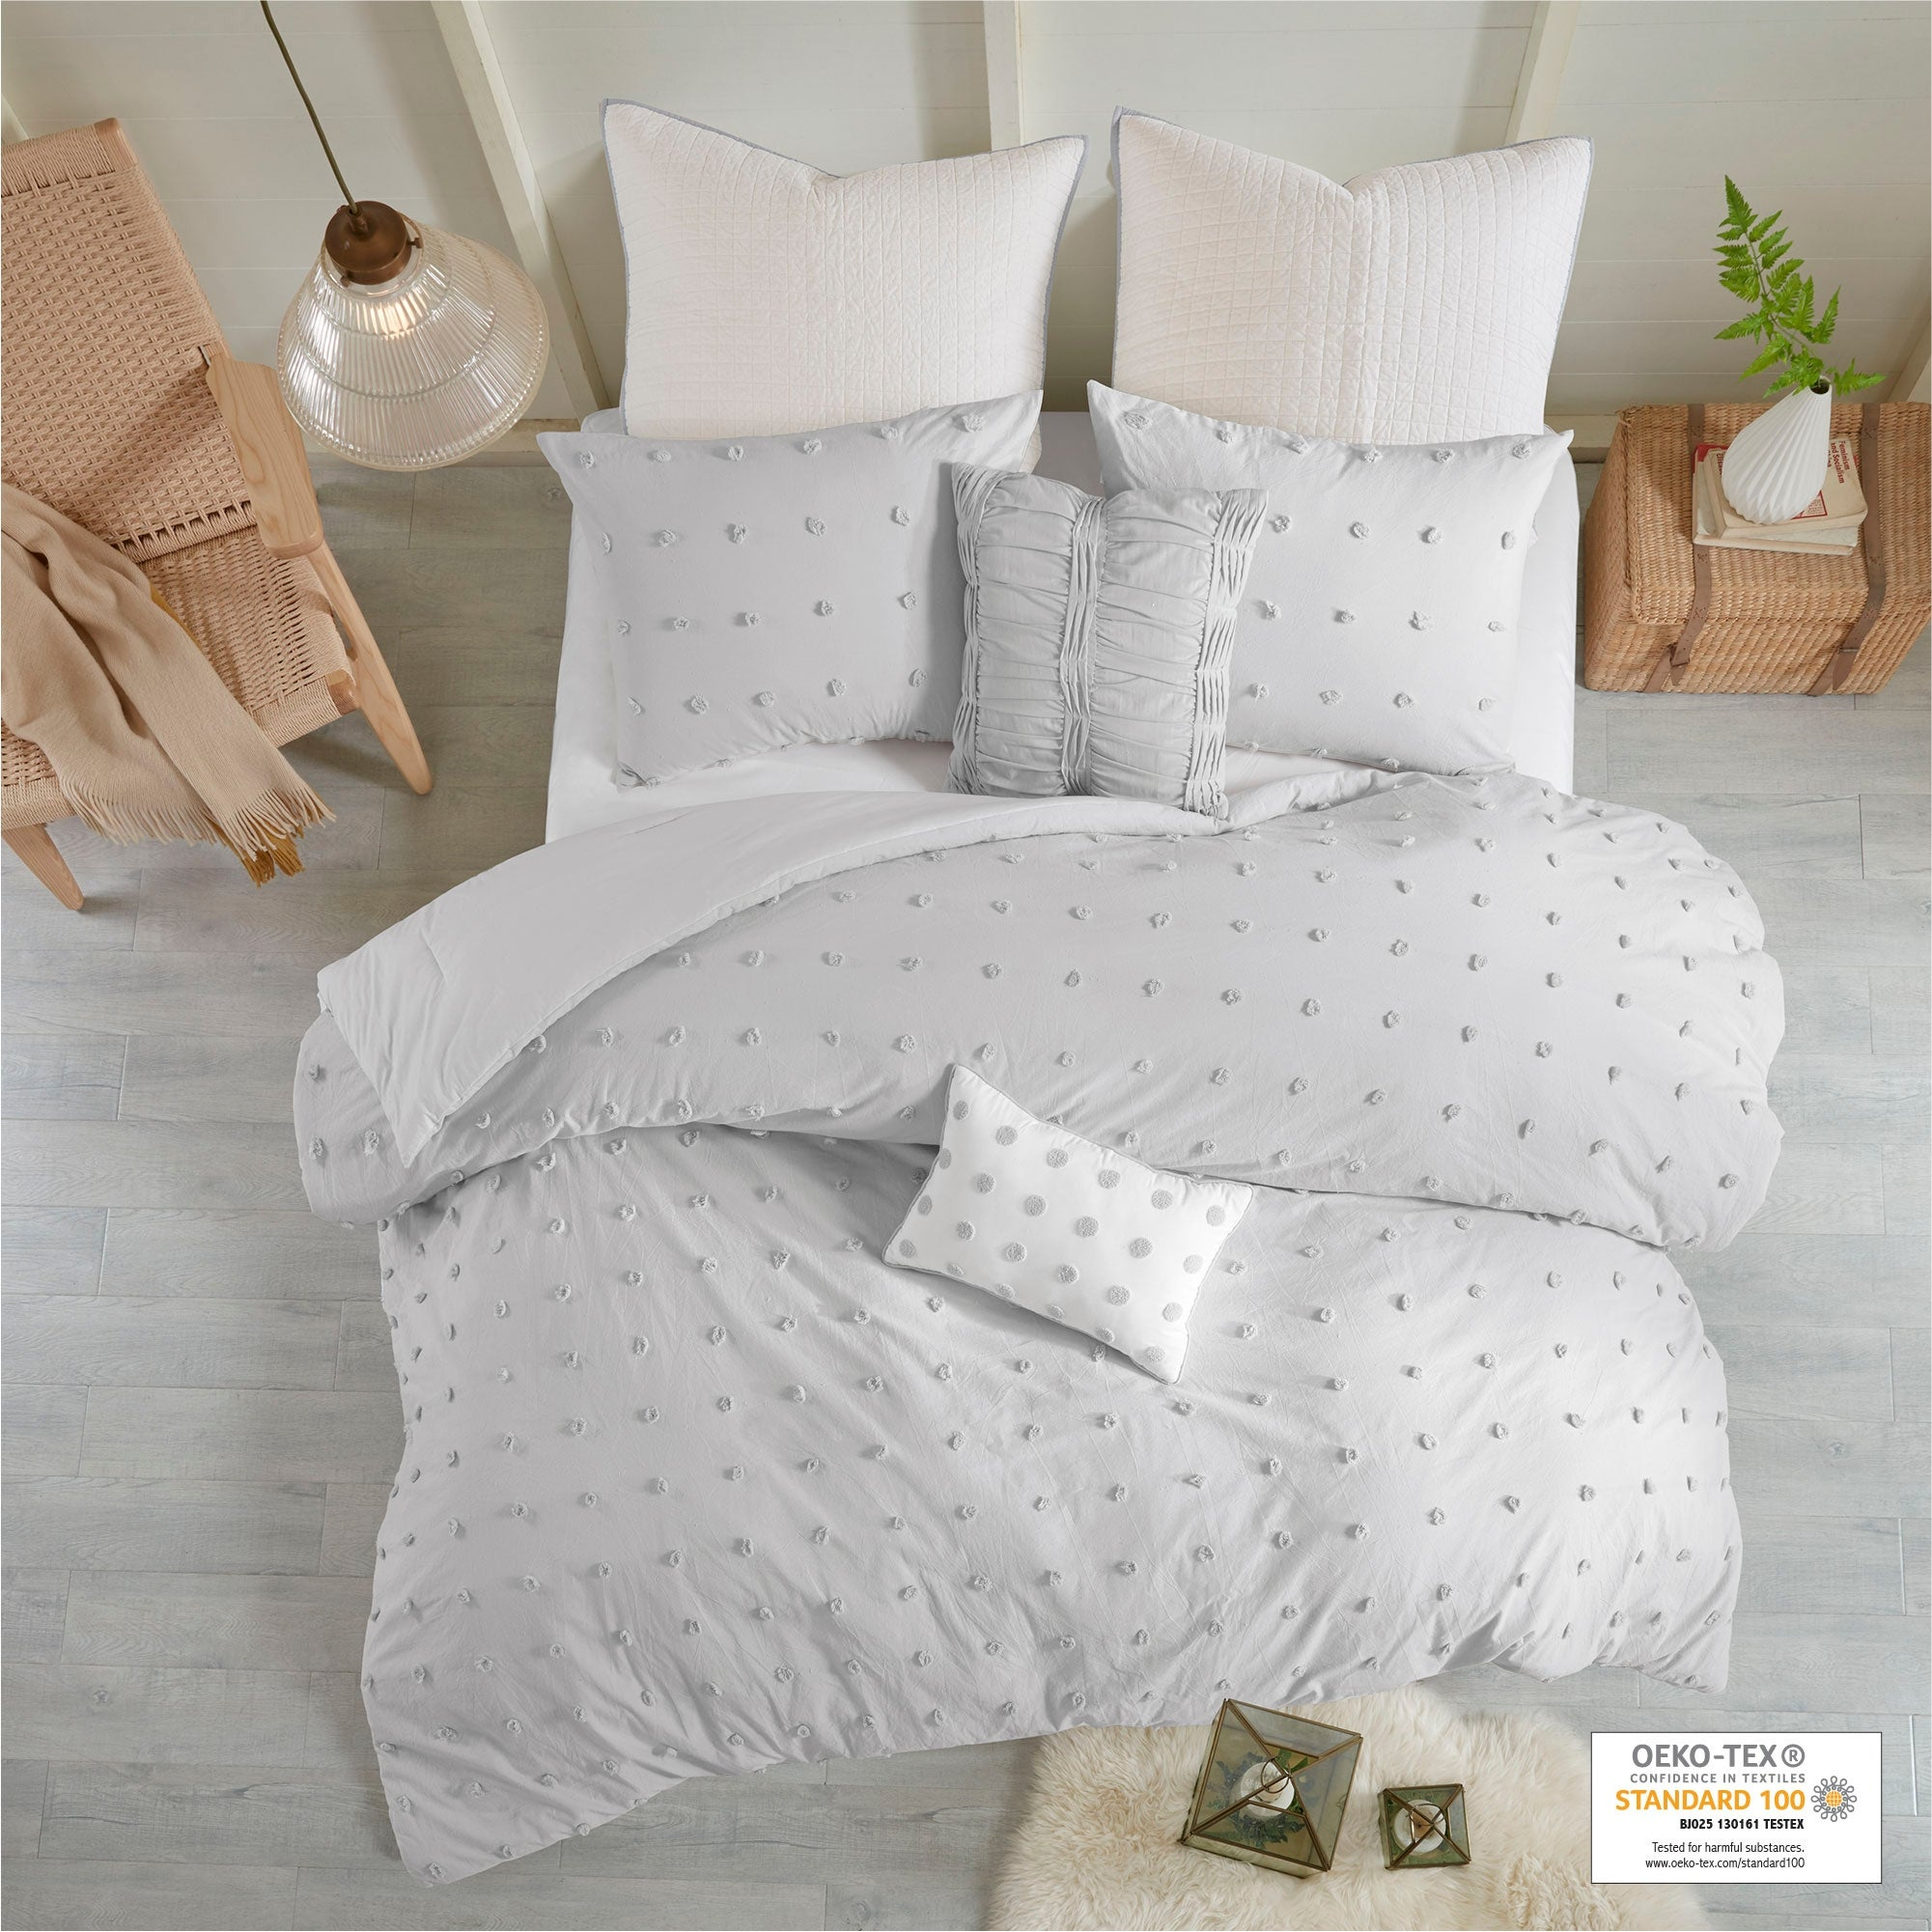 Urban Quilted Bedspread /& Pillow Shams Set Aerial View New York City Print